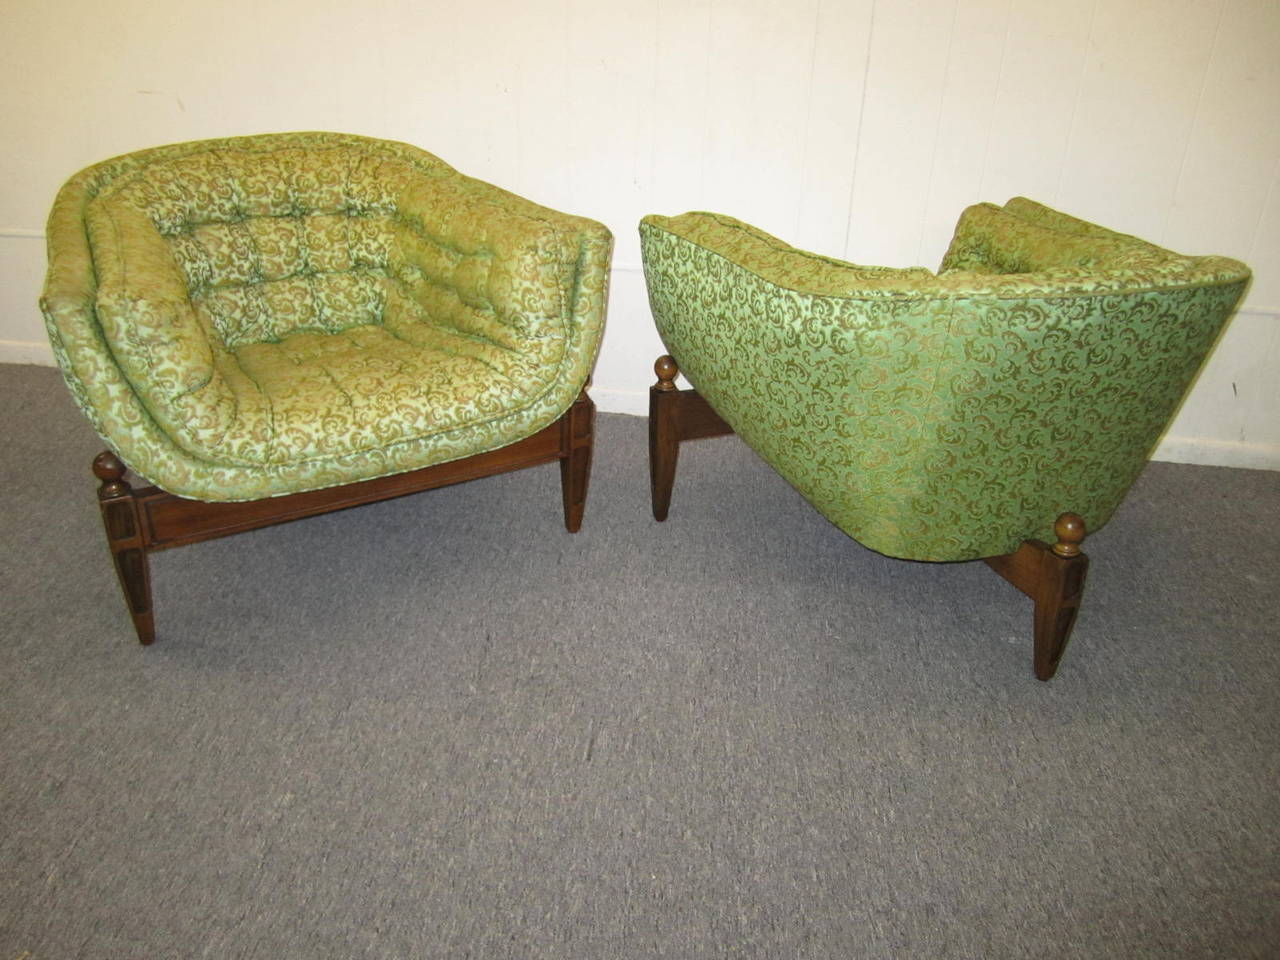 unusual chair legs best lift chairs lovely pair of mid century modern tufted 3 legged lounge